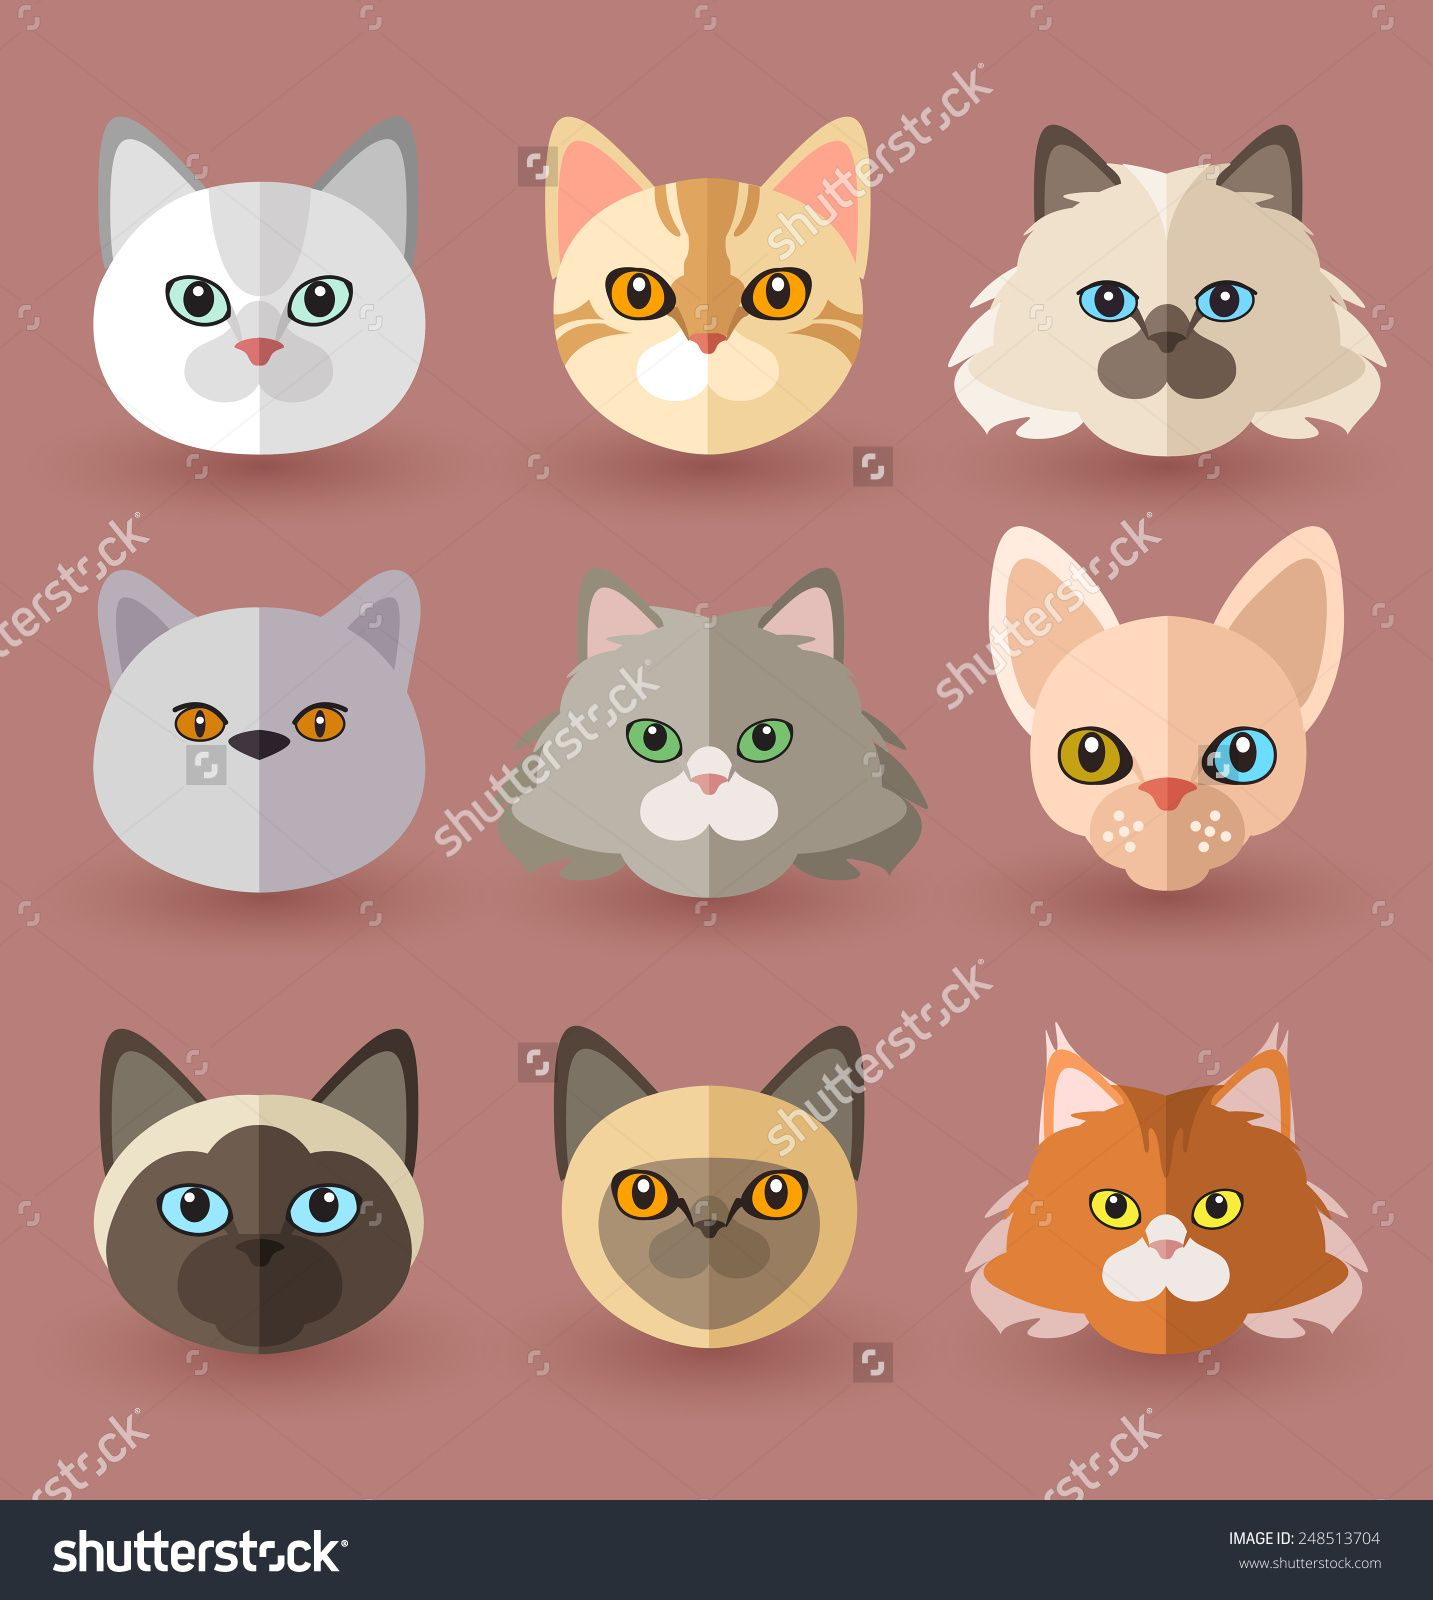 Stock Images Similar To Id 120176839 Cat Siamese Breed Vector